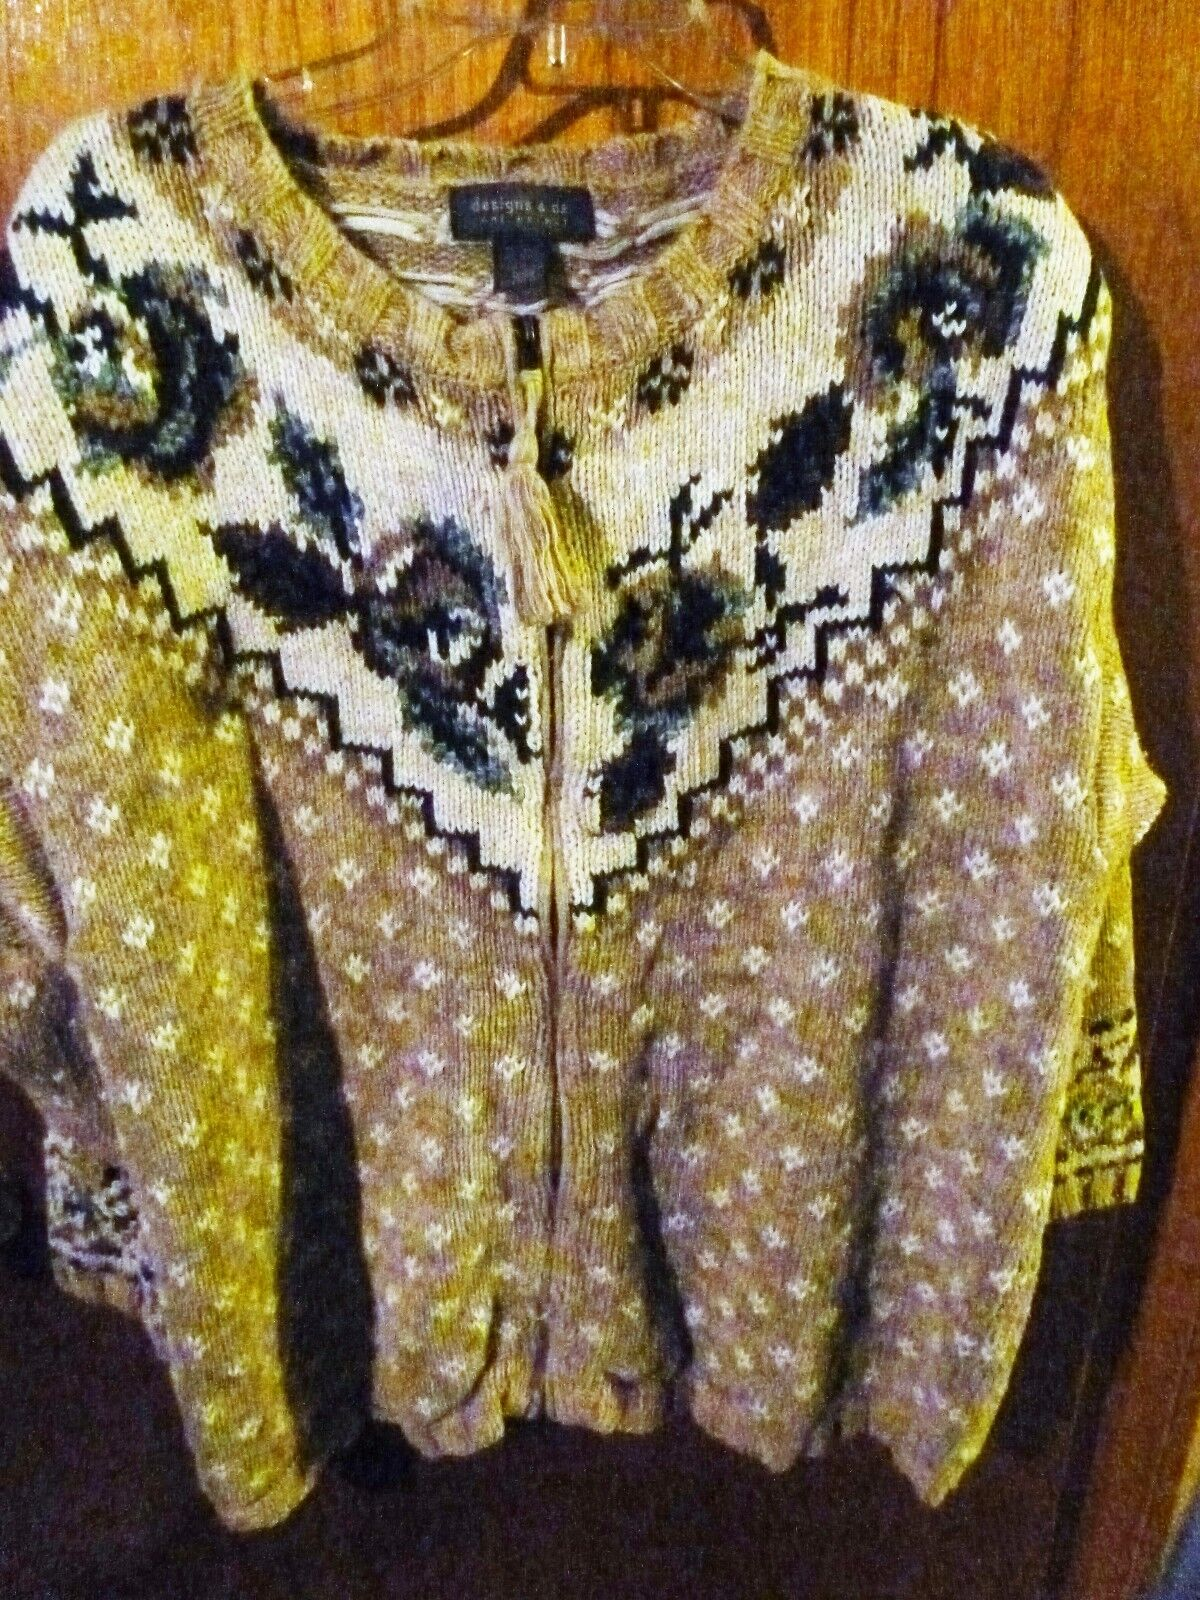 Woman's Designs & Co Lane Bryant Zipper Cardigan Earth Tones Sweater Size 18 20